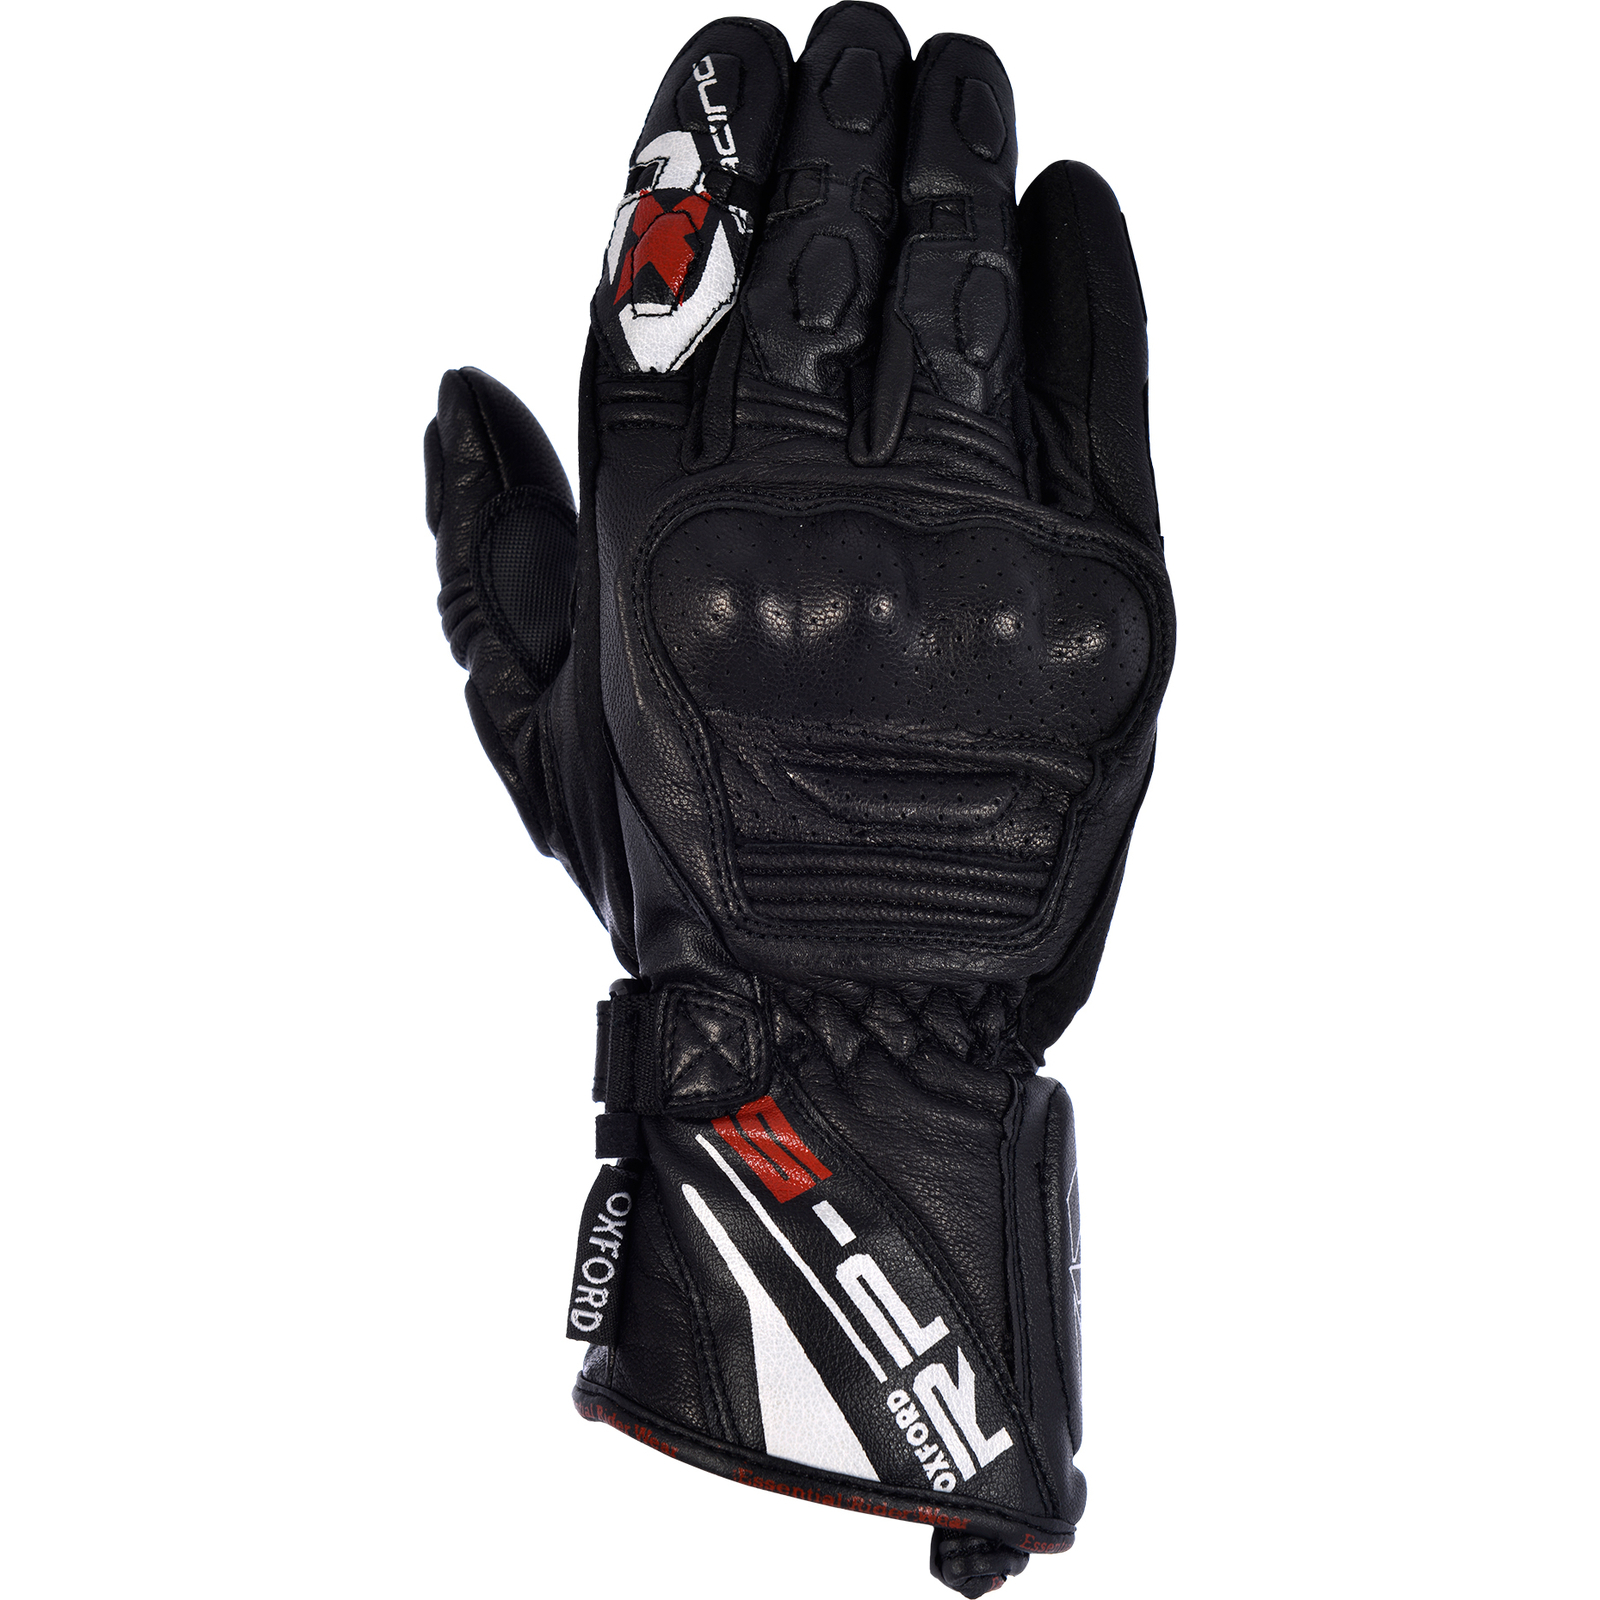 Motorcycle gloves for summer - Oxford Rp 5 Leather Motorcycle Gloves Summer Race